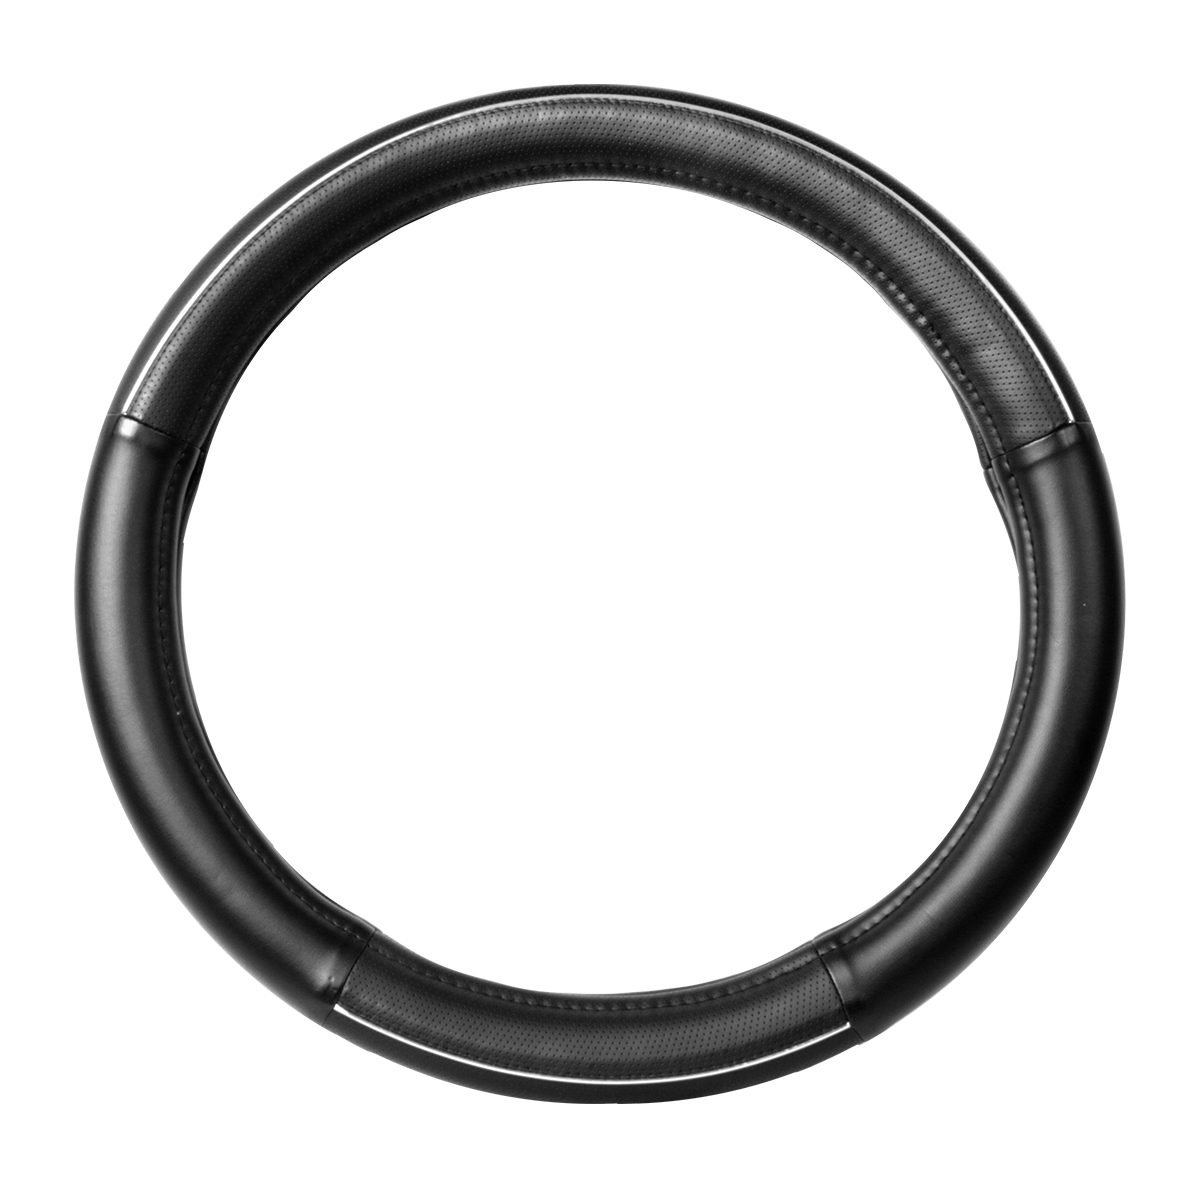 Grand General 54057 Deluxe Plus Series 18 Heavy Duty Steering Wheel Cover for Trucks, Buses, RVs and Utility Vehicles